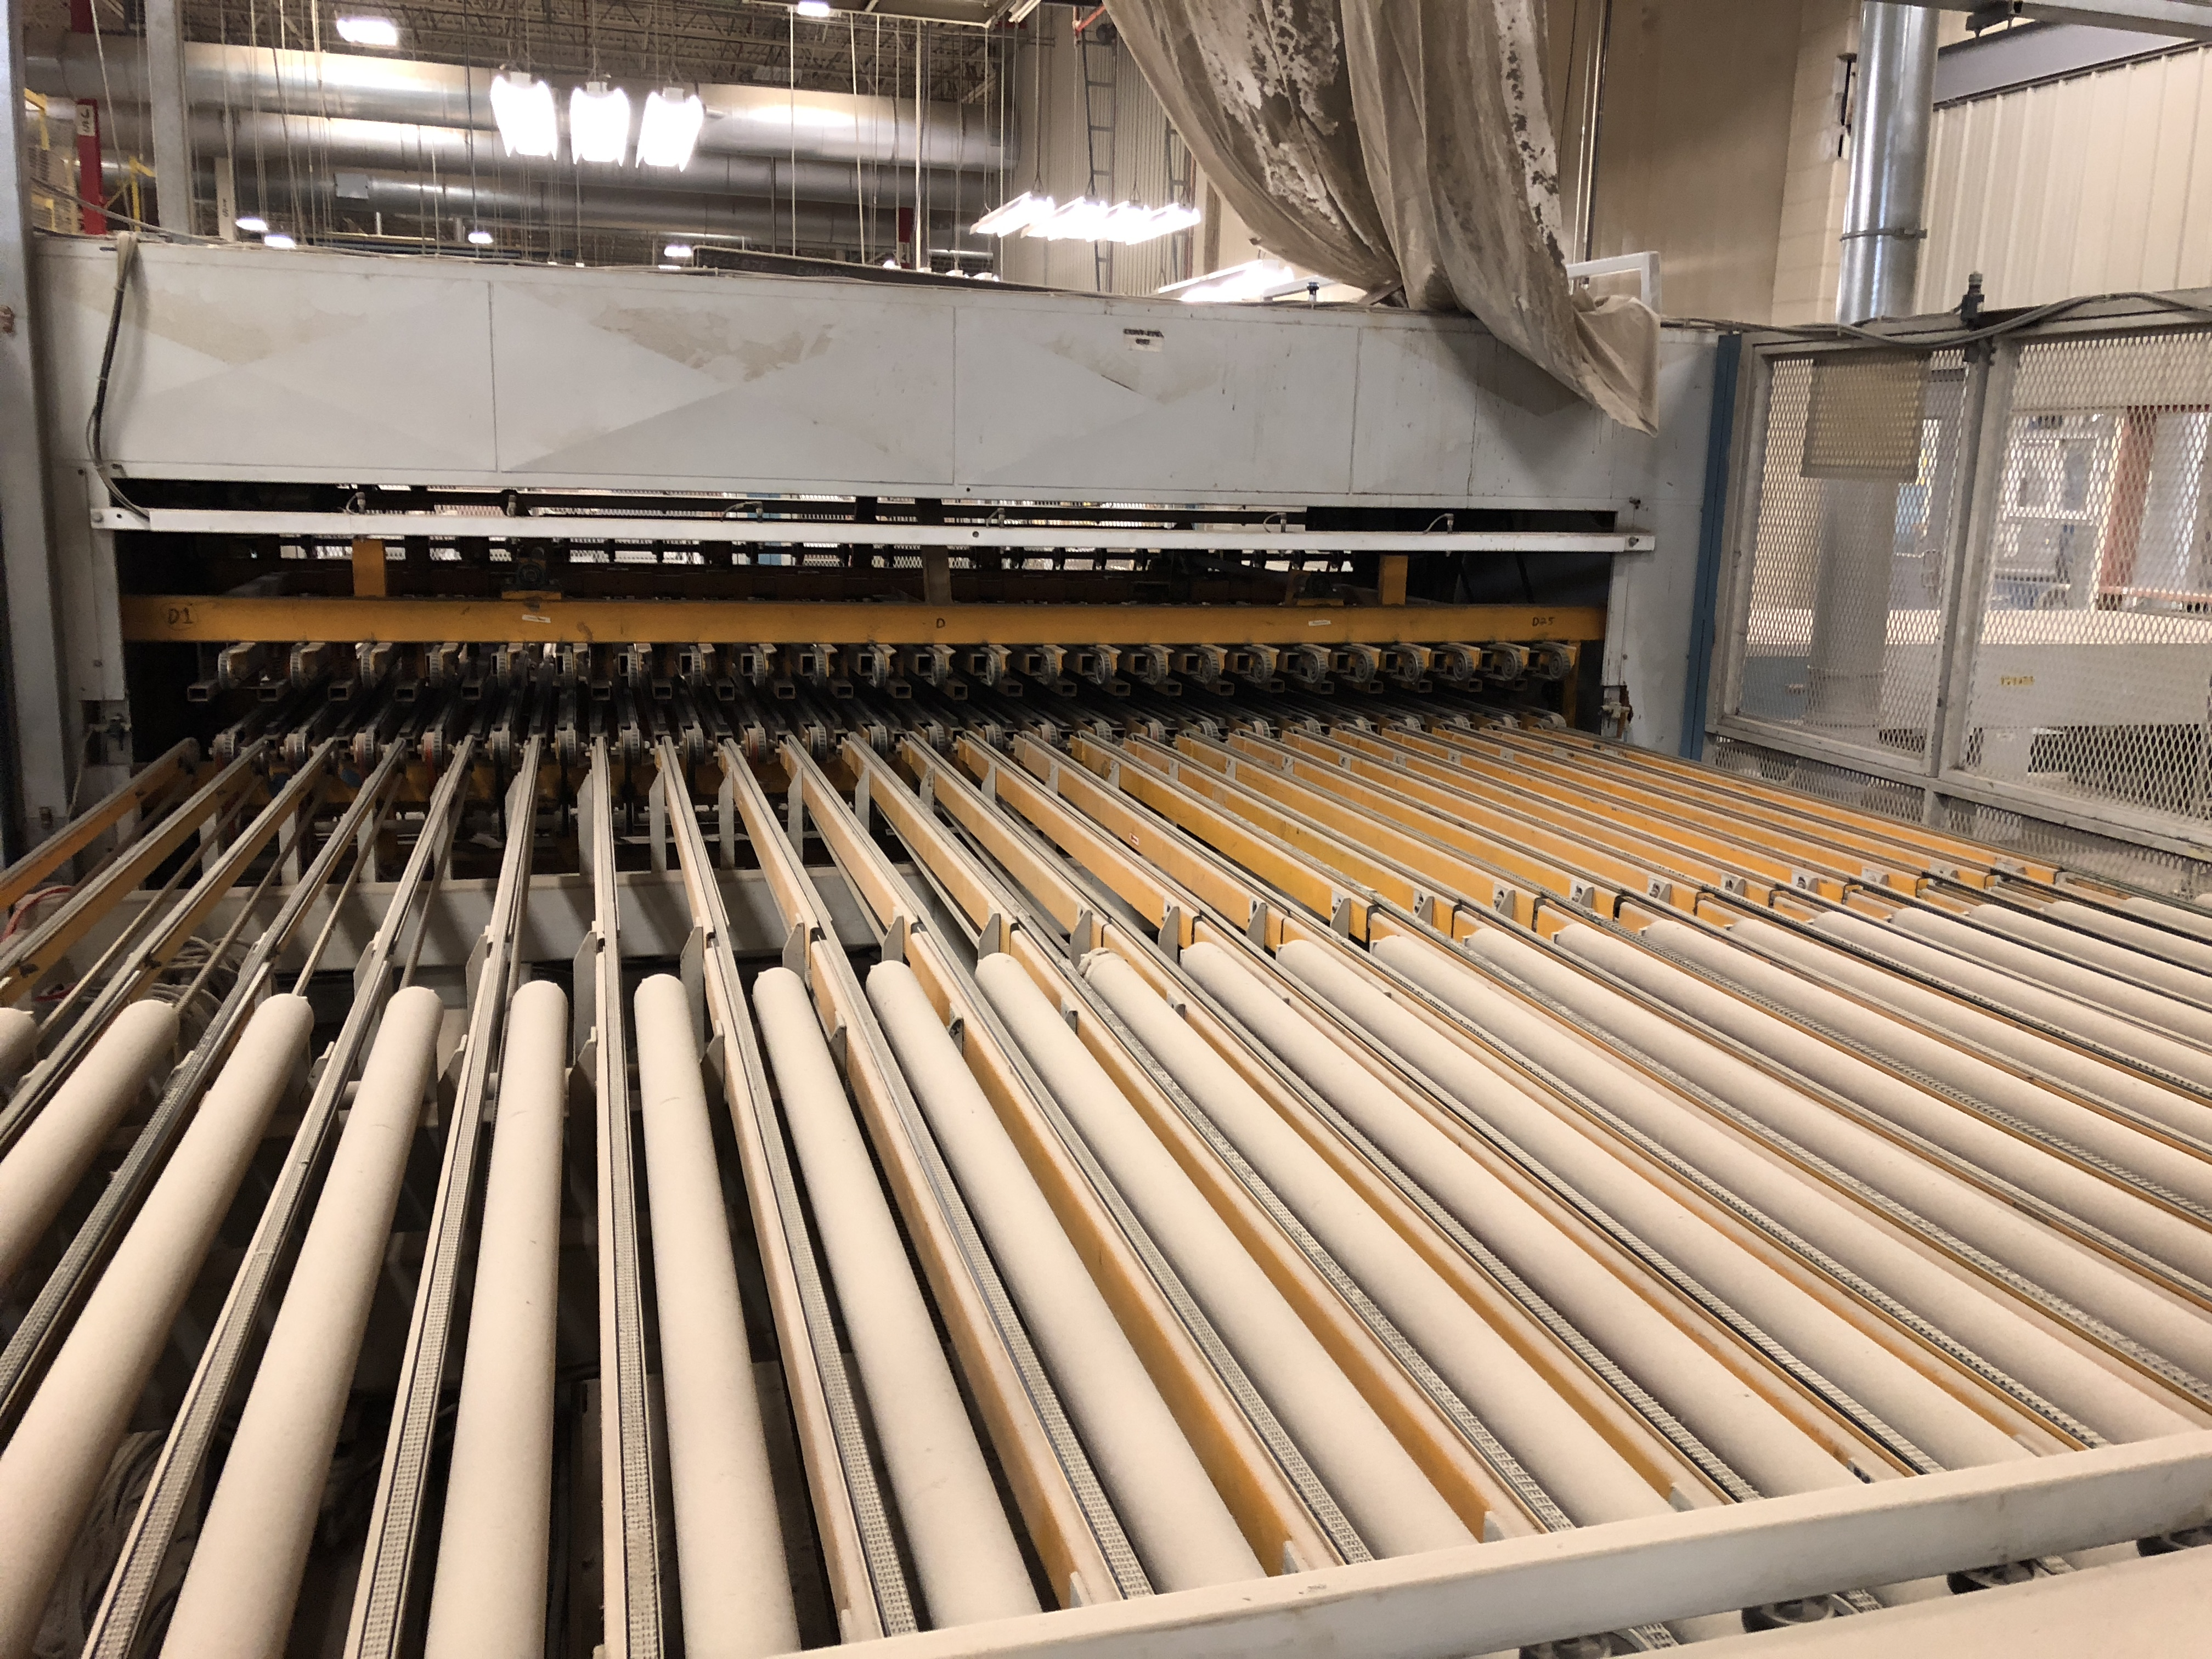 CEFLA PANEL FLIPPER (WITH INFEED AND OUTFEED BELT CONVEYORS) - Image 5 of 11